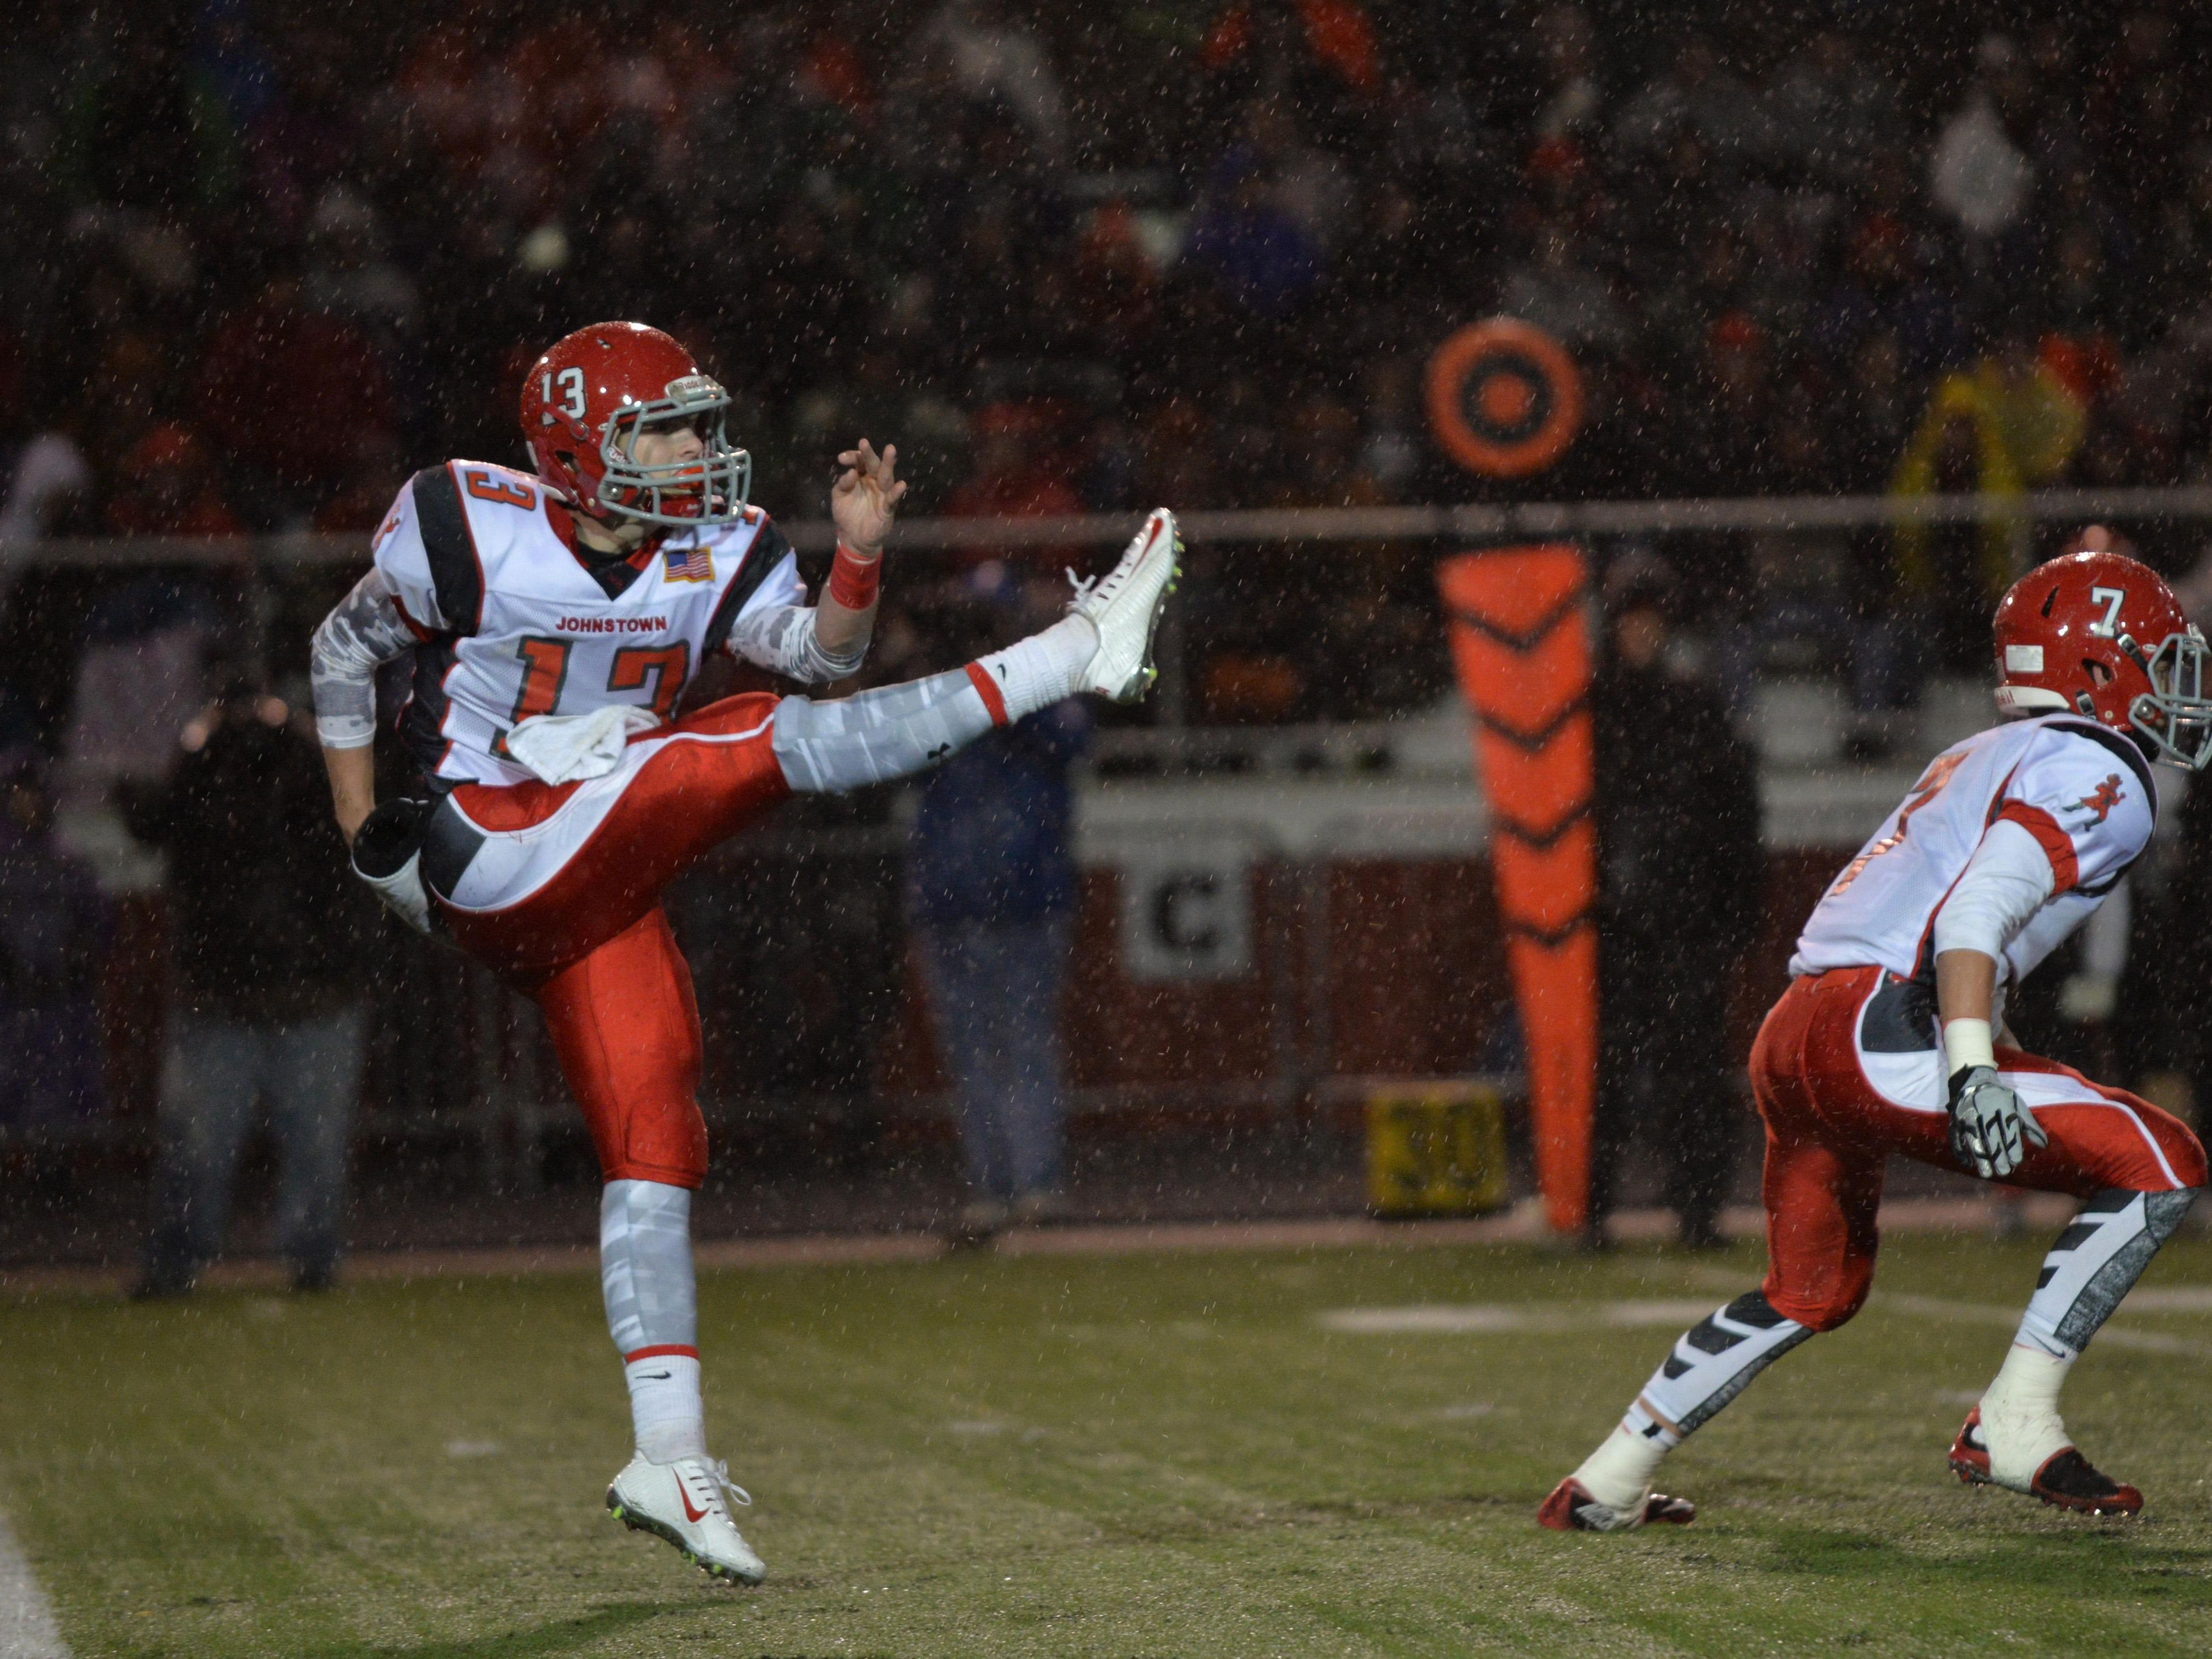 Johnstown junior punter Cody Workman was named to the Division IV All-Ohio first team on Tuesday.